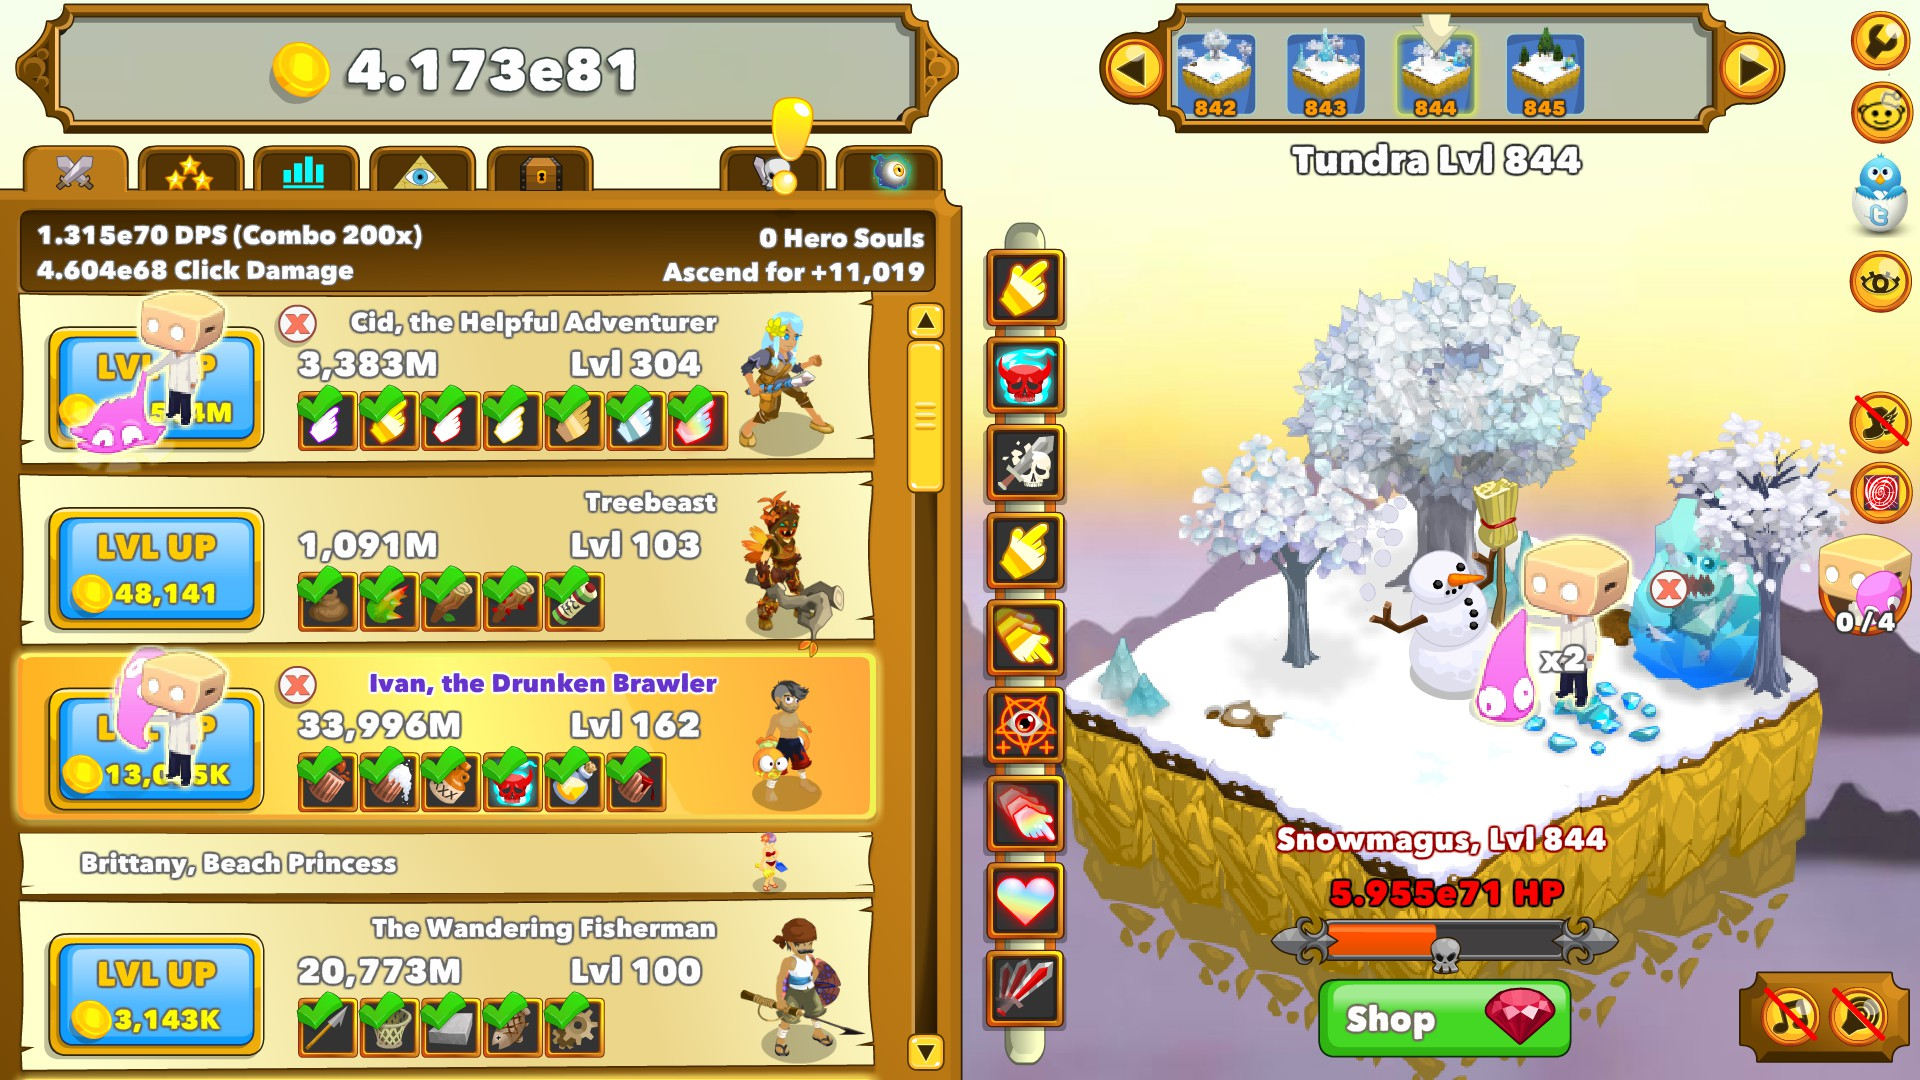 Clicker Heroes: Boxy & Bloop Auto Clicker Steam Discovery